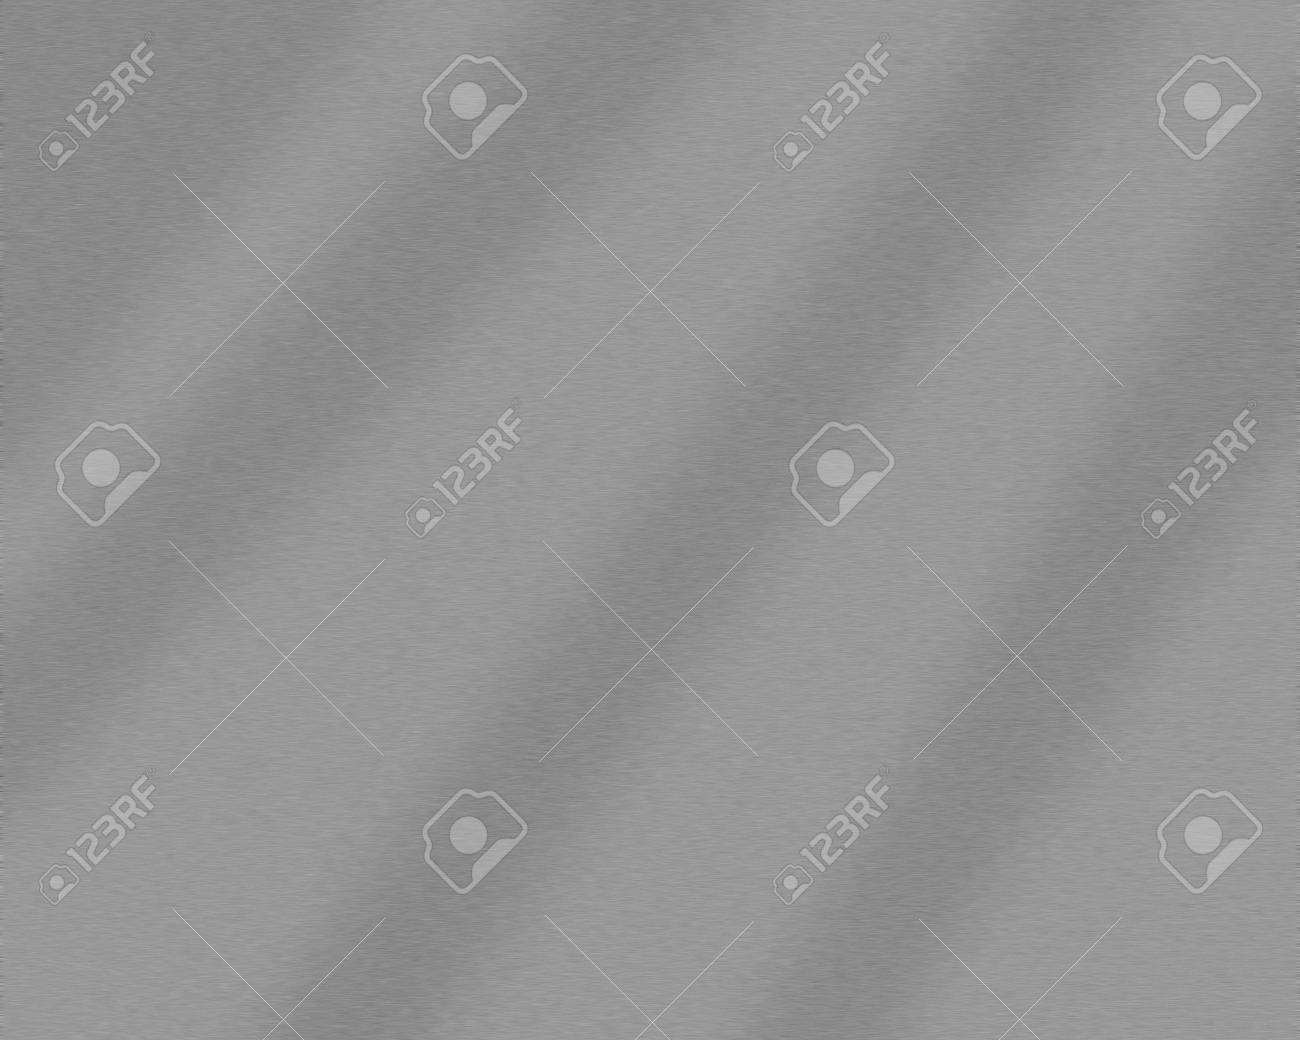 brushed metal texture  digital high resolution illustration Stock Photo - 8595510